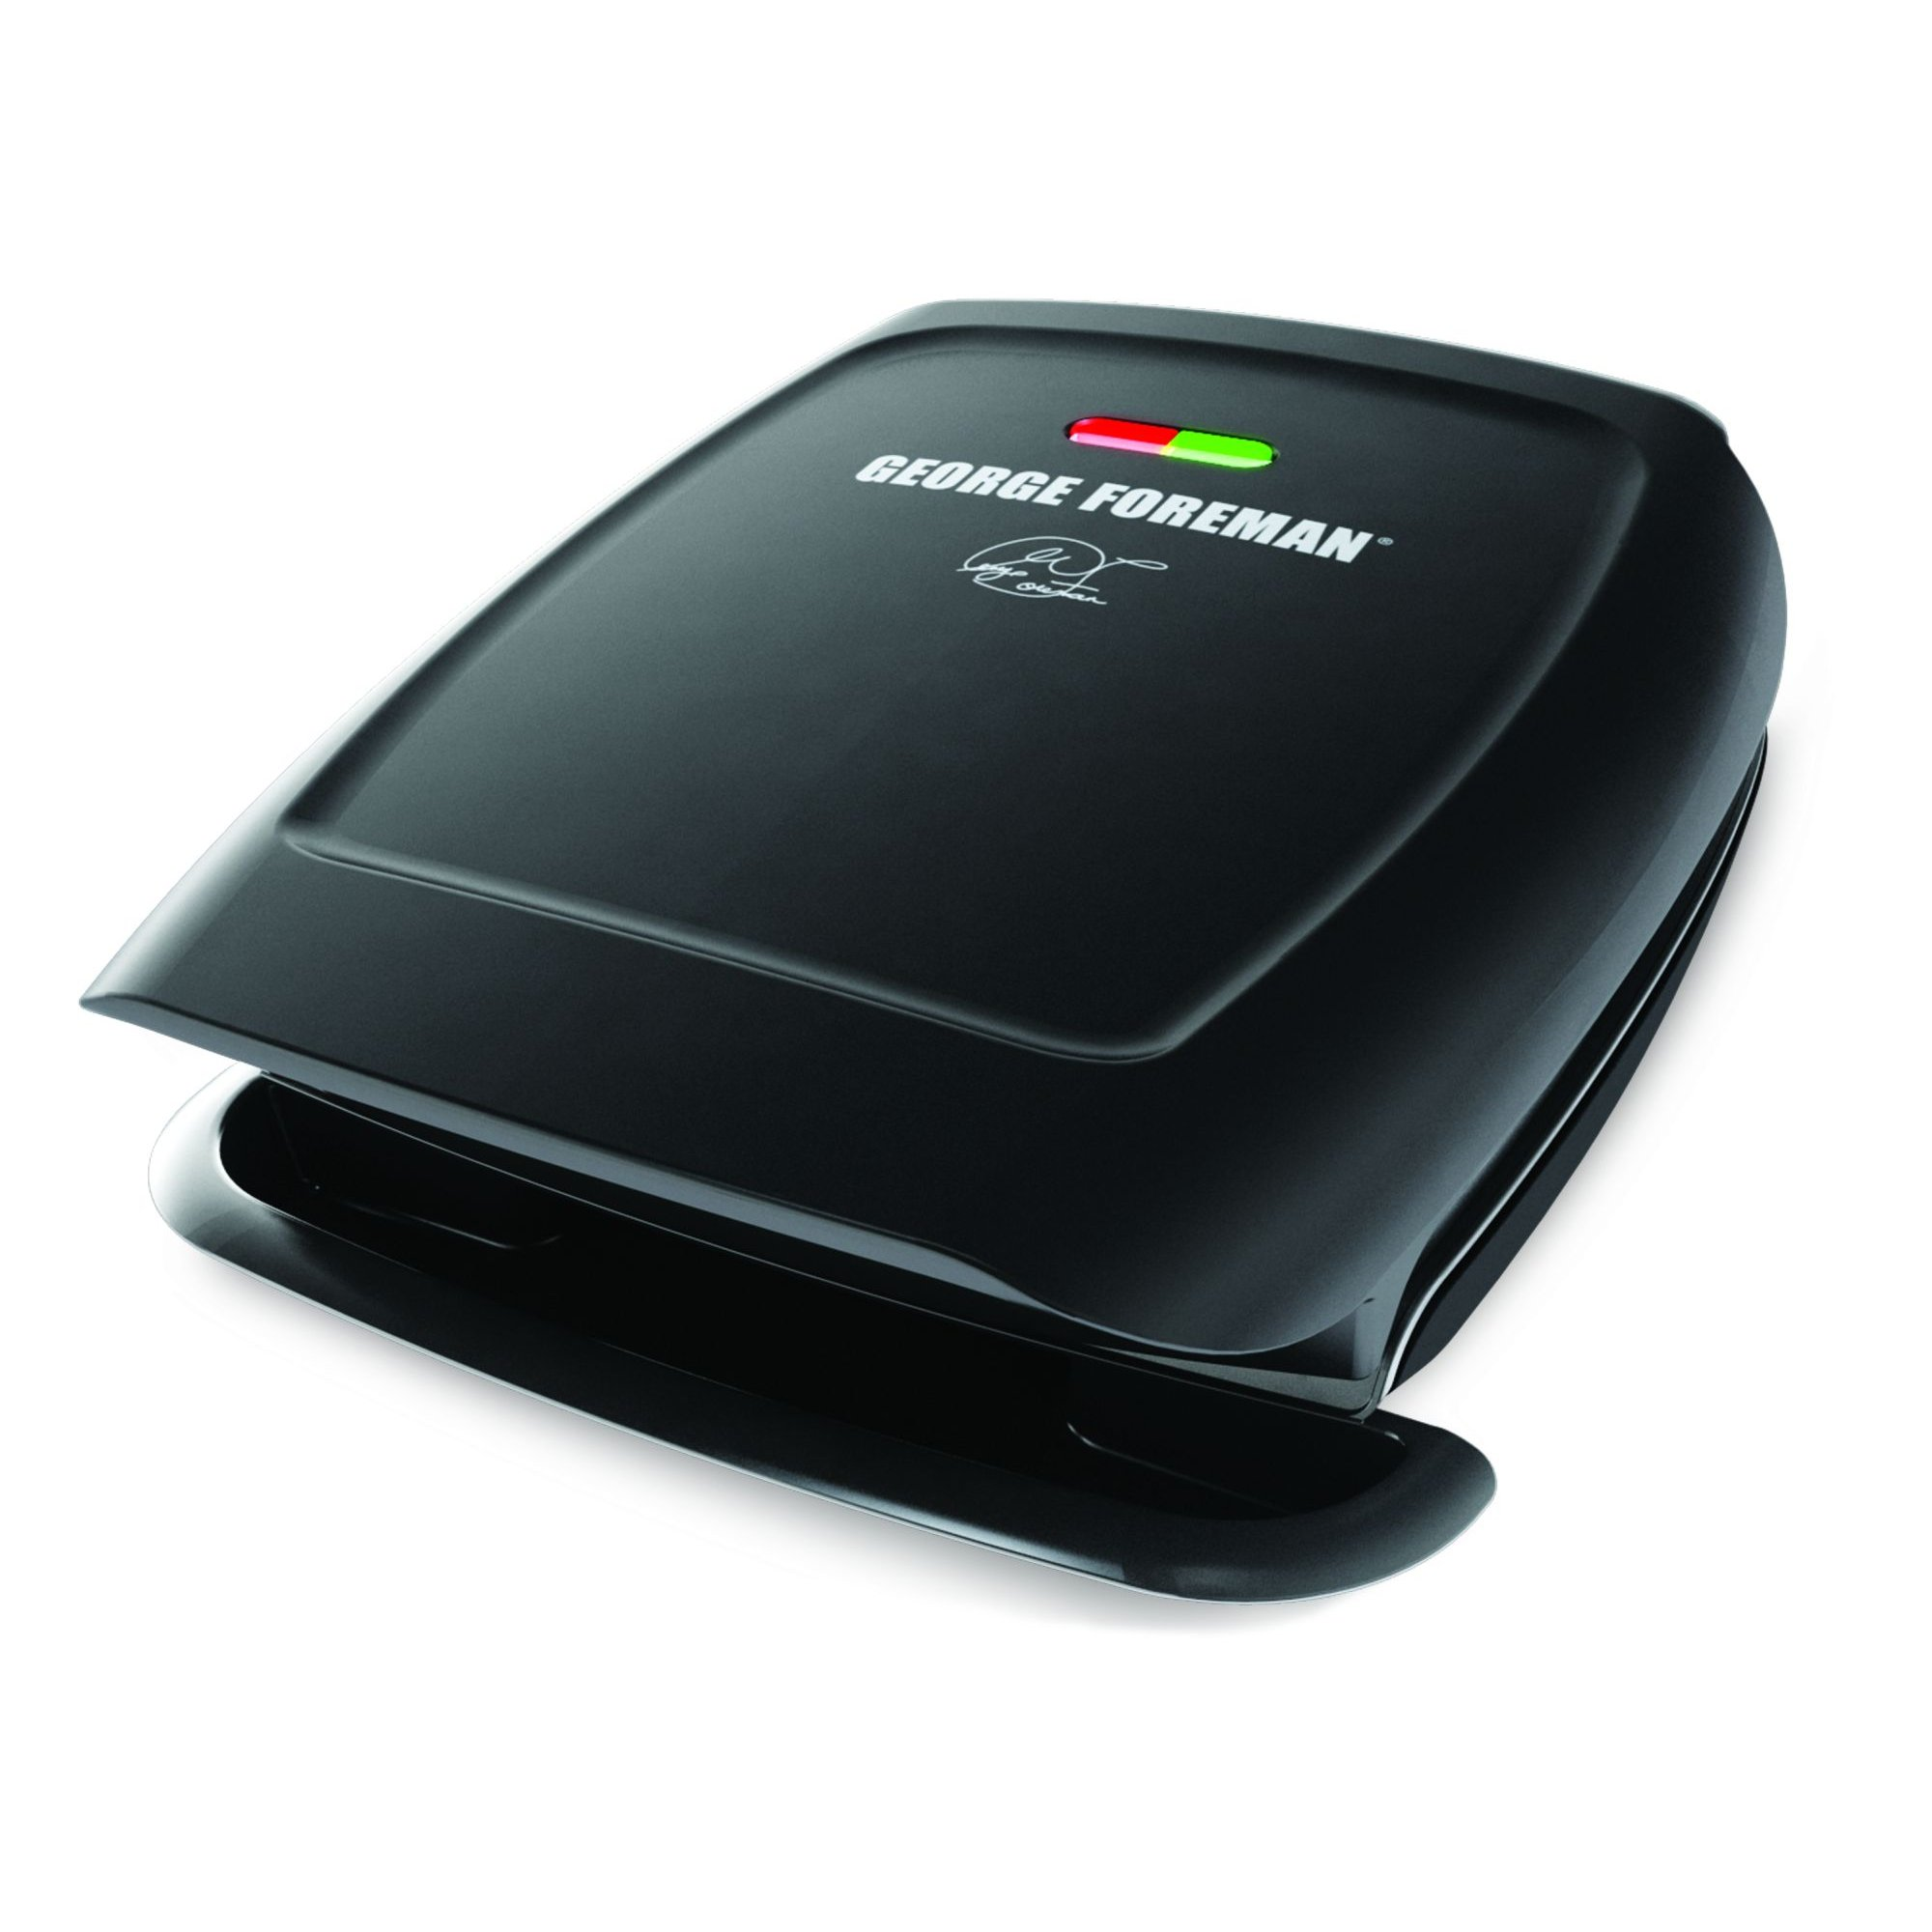 George Foreman 4-Serving Fixed Plate 2-in-1 Grill and Panini Press, Black